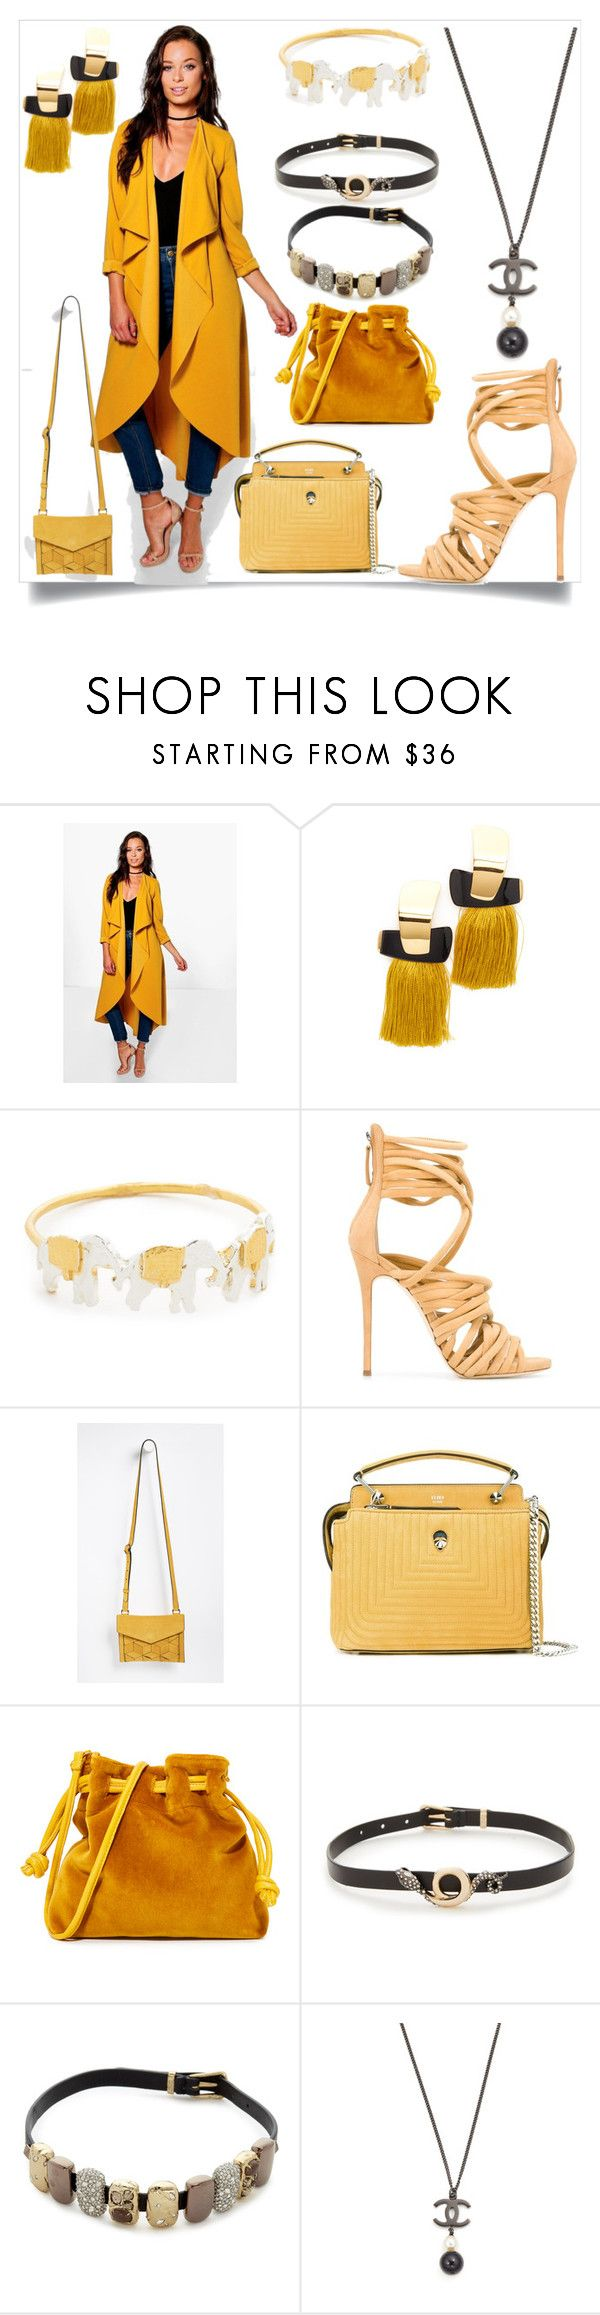 """""""Waterfall Duster"""" by camry-brynn ❤ liked on Polyvore featuring Boohoo, Lizzie Fortunato, Alex Monroe, Giuseppe Zanotti, Welden, Fendi, Clare V. and Alexis Bittar"""